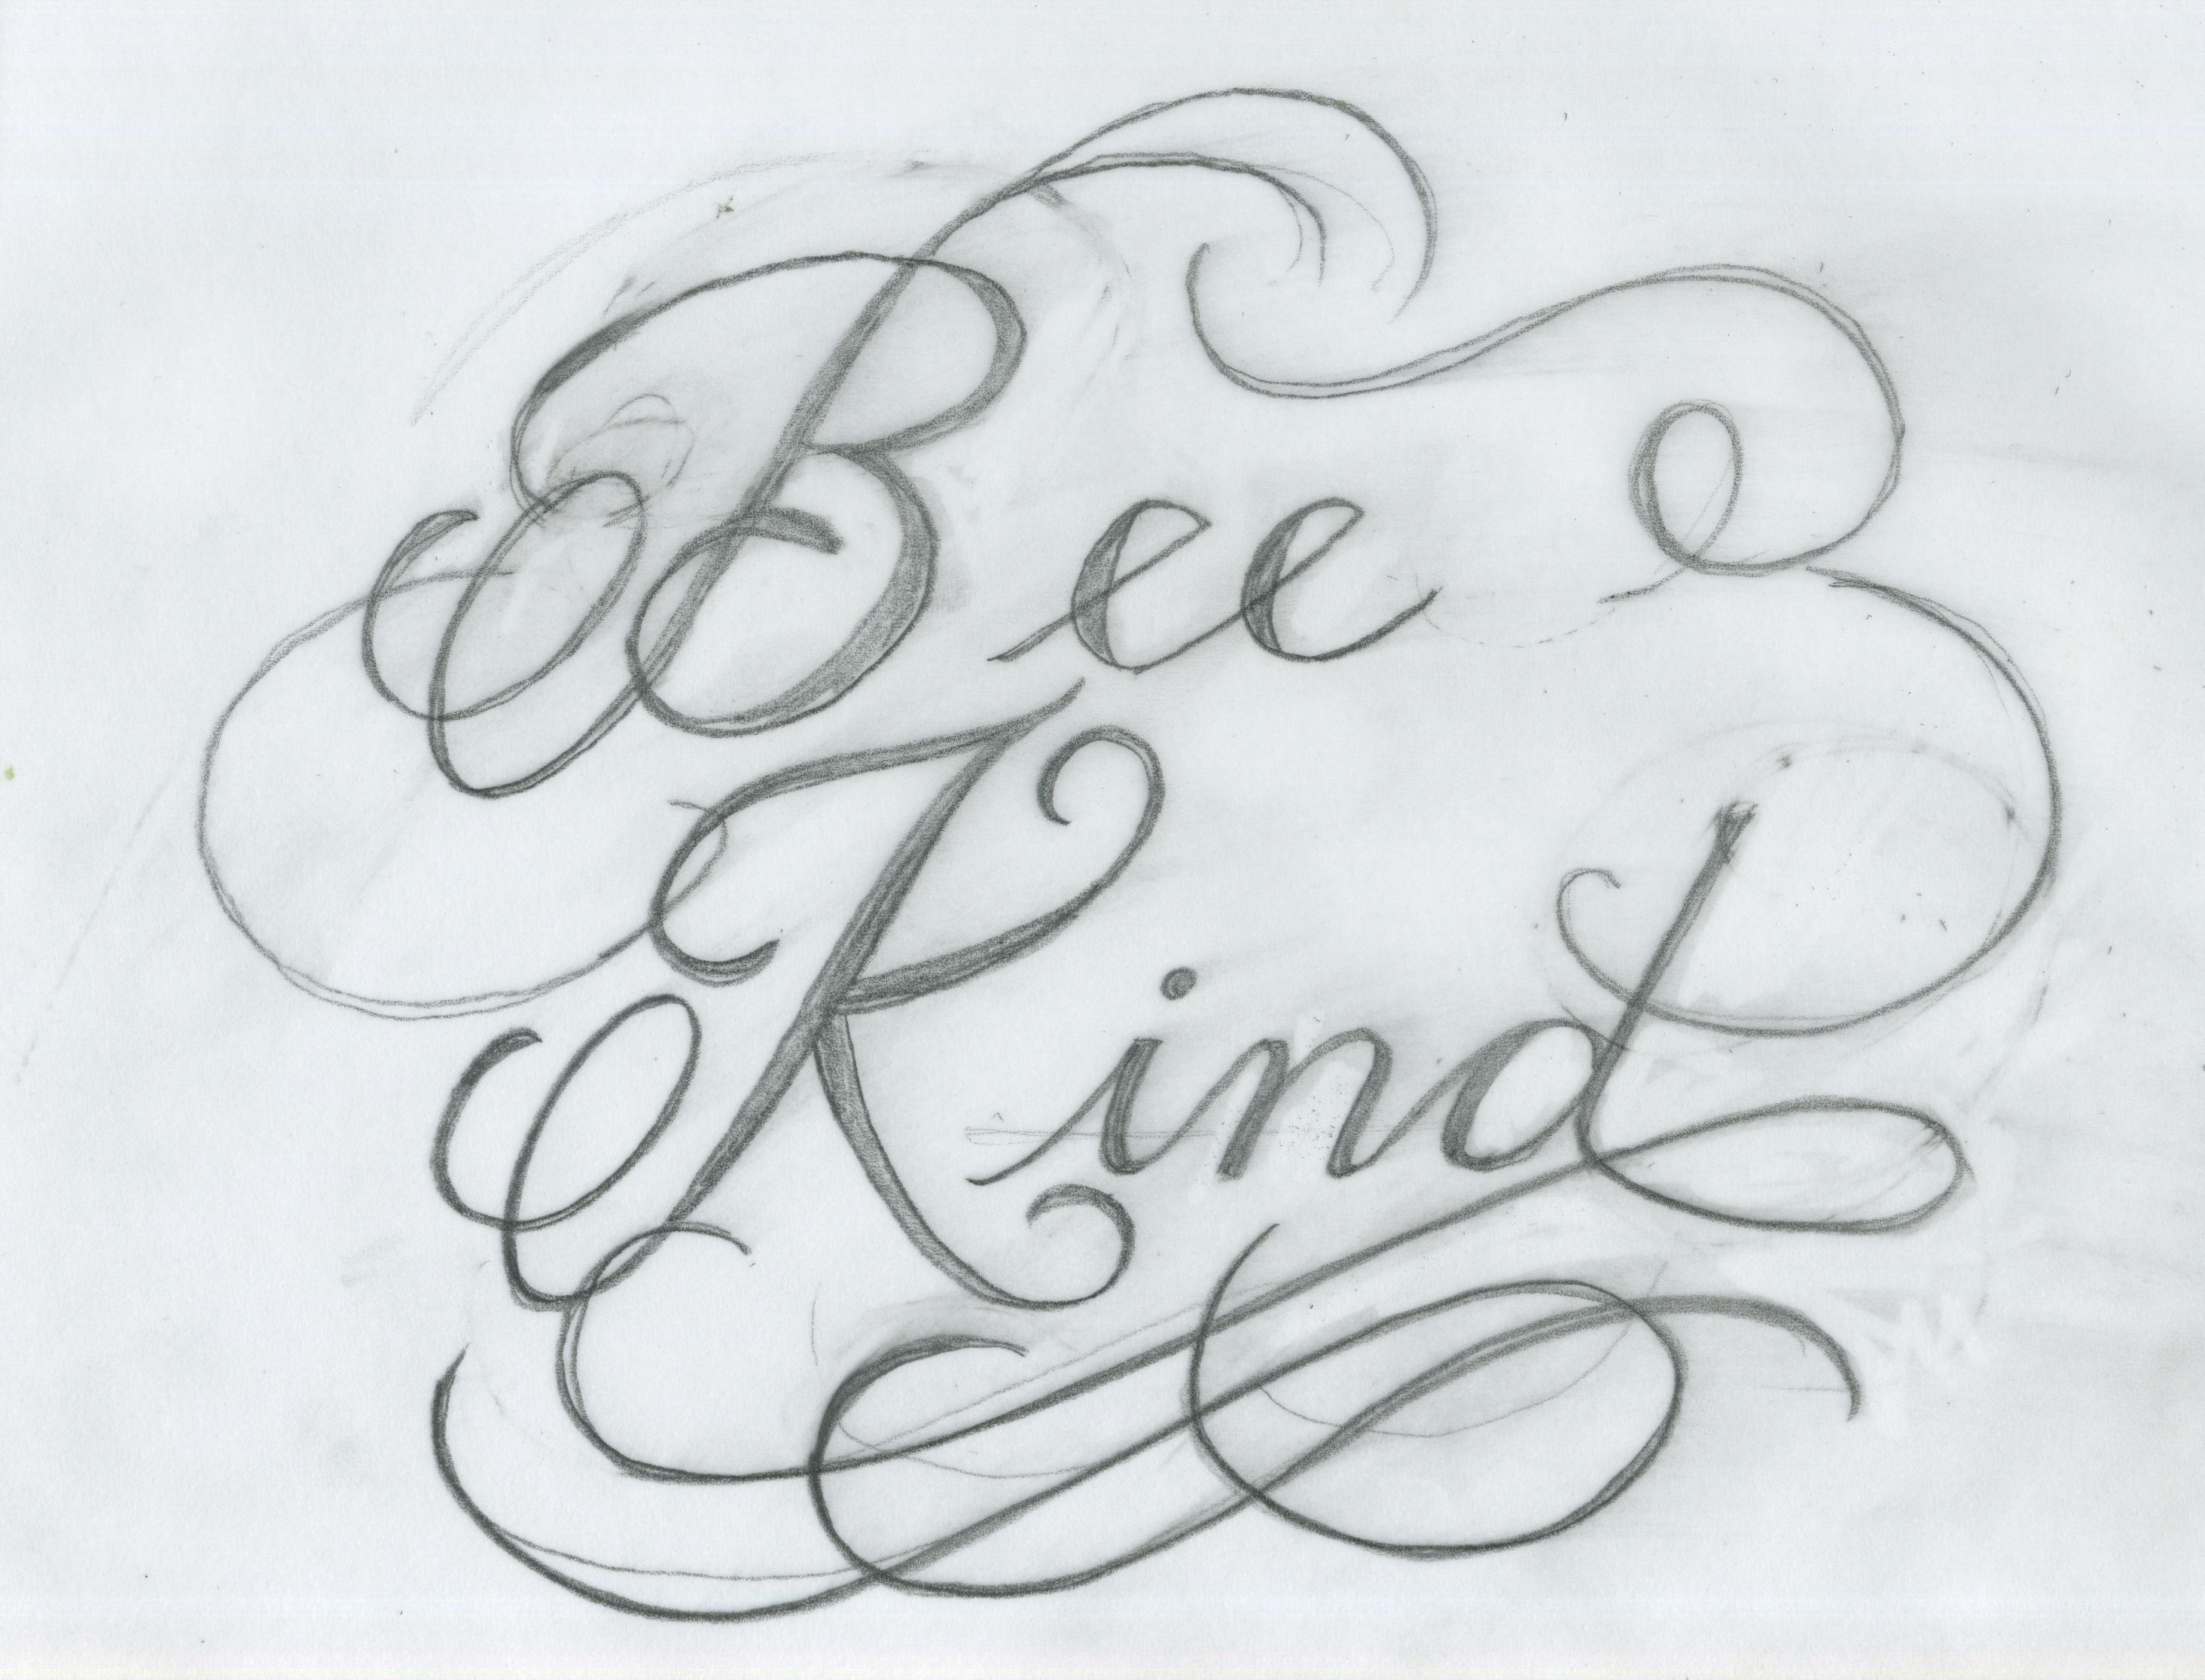 Bee Kind - image 1 - student project